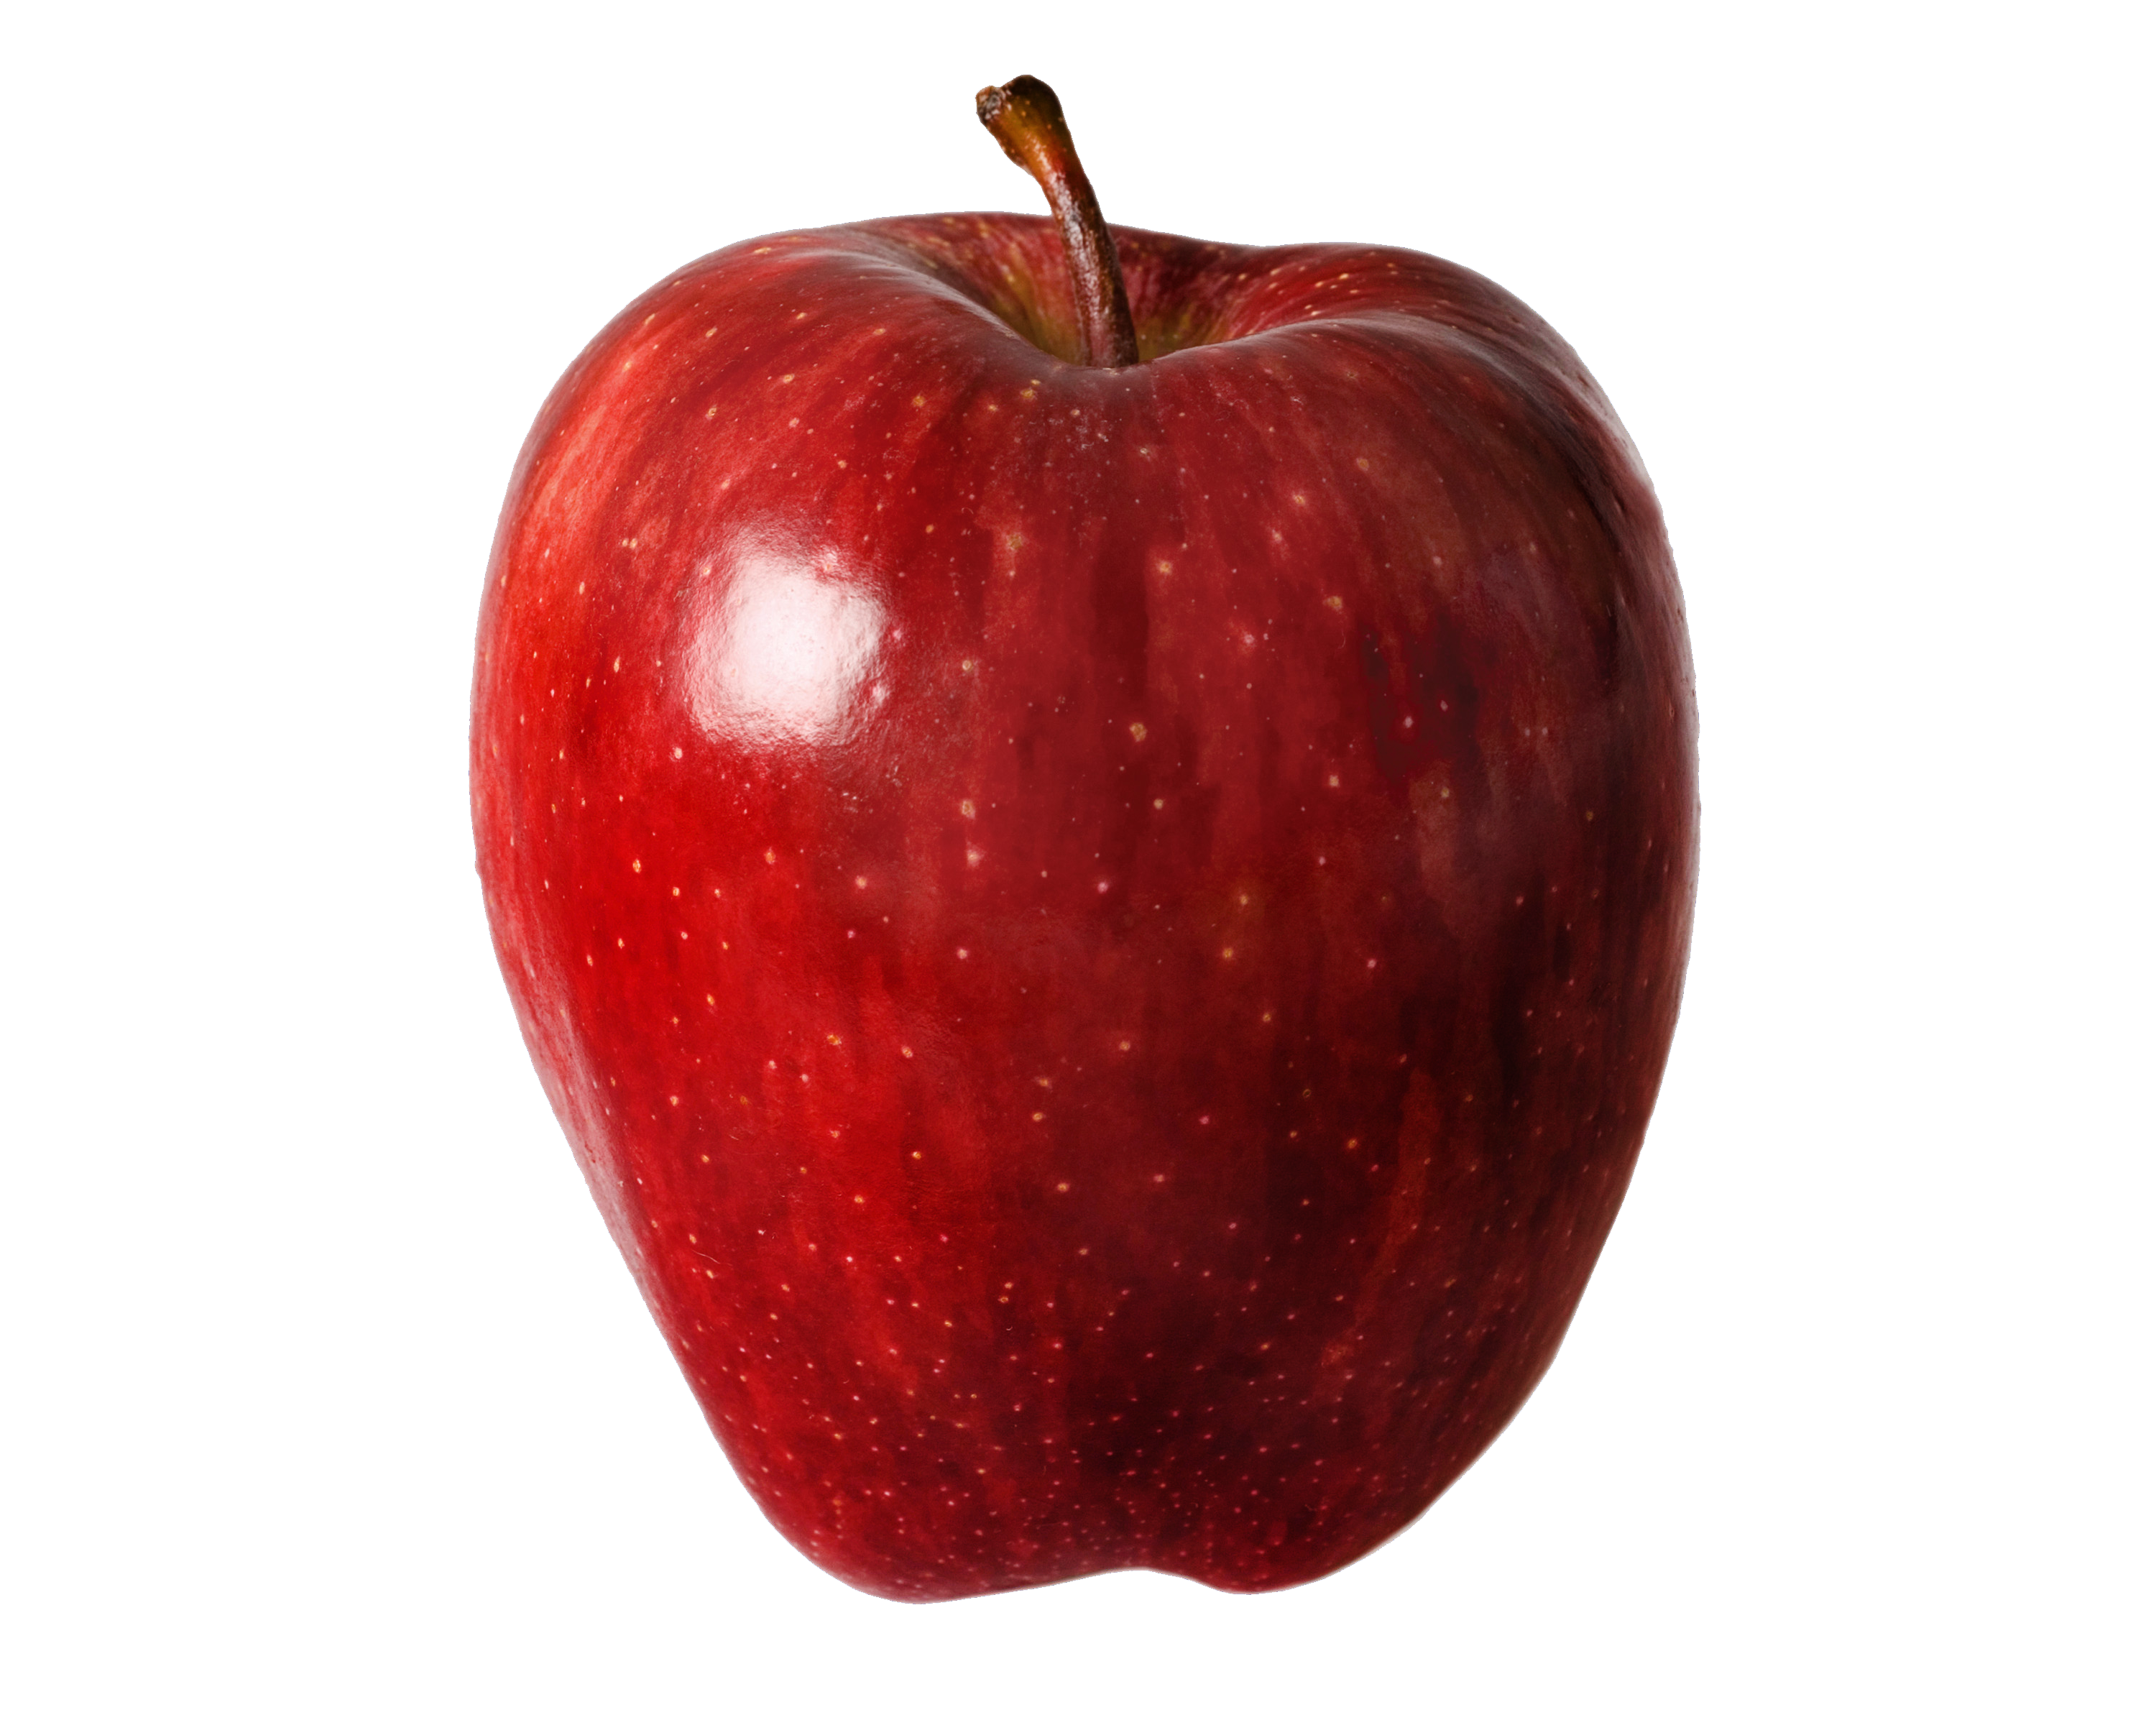 Clipart apple transparent background. Icon web icons png